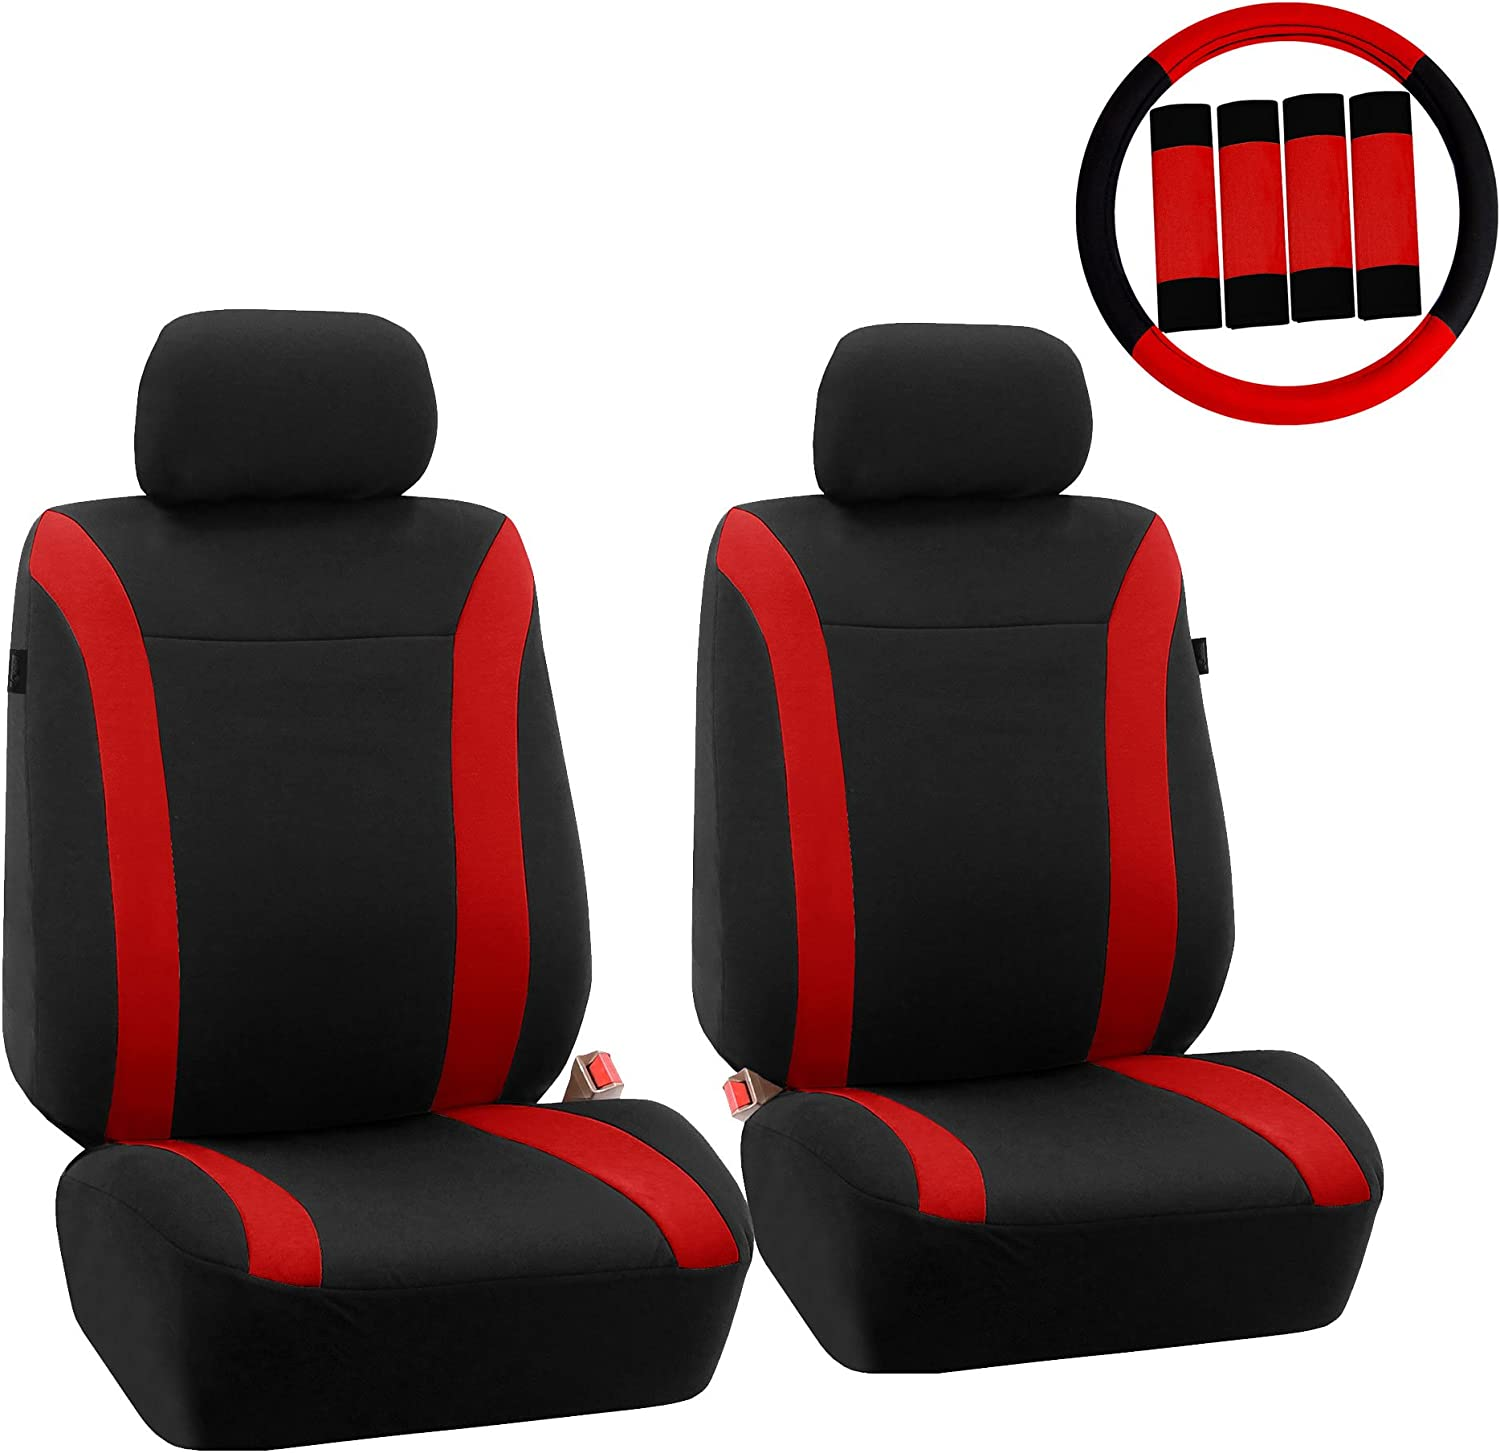 FH Group FH-FB054102 Cosmopolitan Flat Cloth Pair Set Seat Covers, (Airbag Compatible & Split Bench) W. FH2033 Steering Wheel Cover & Seat Belt Pads, Red/Black-Fit Most Car, Truck, SUV, or Van